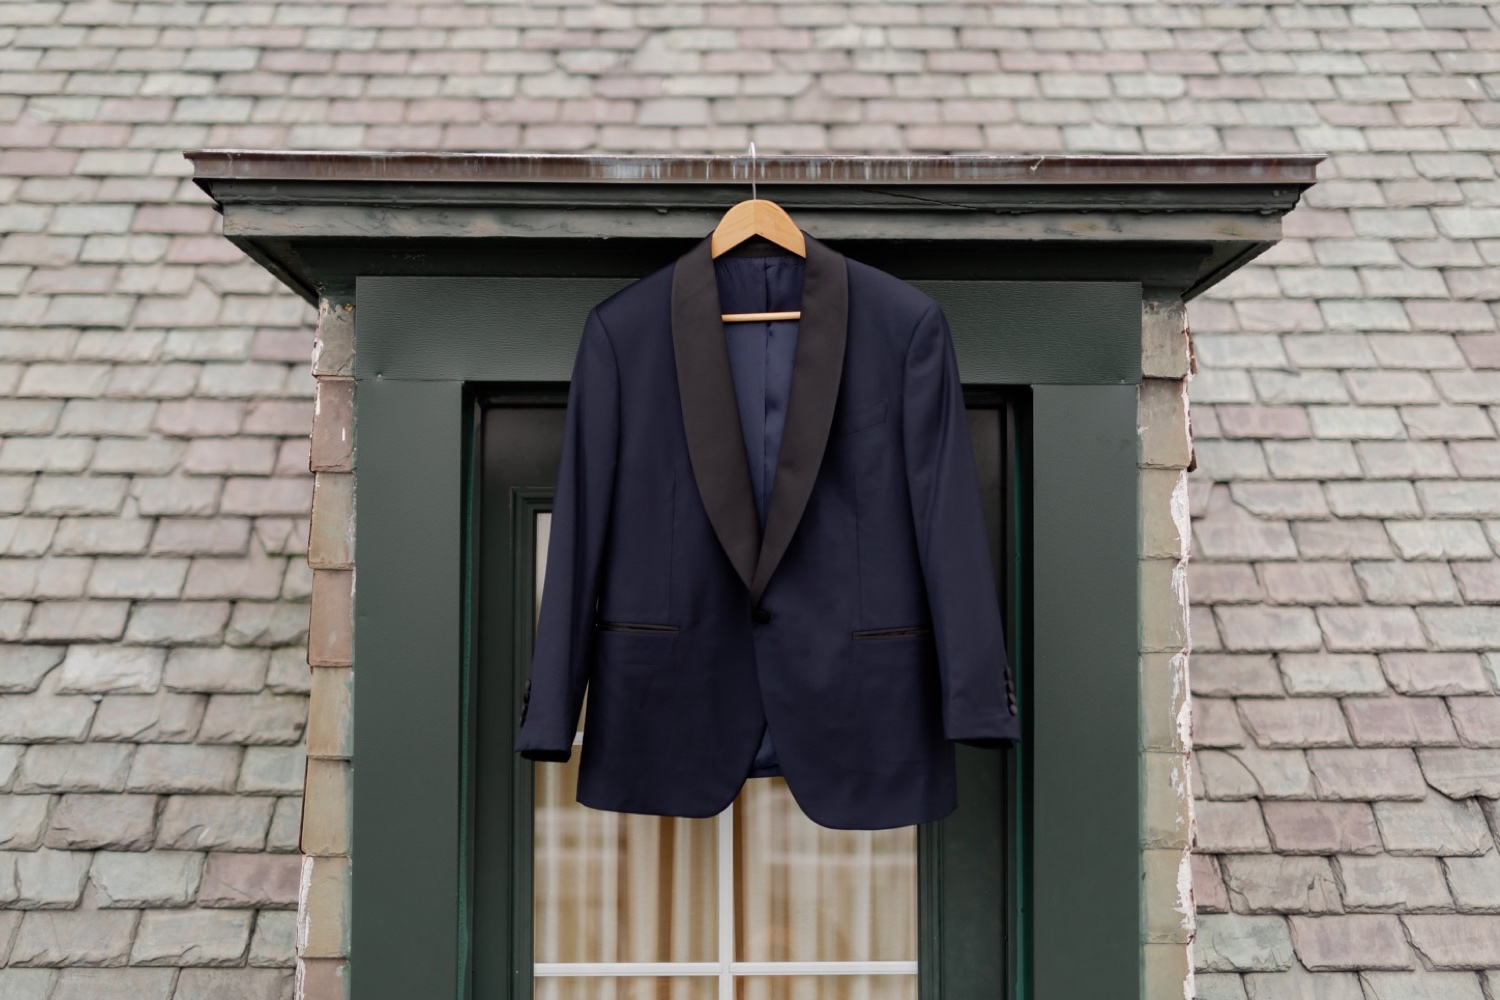 A wedding suit hanging outside.